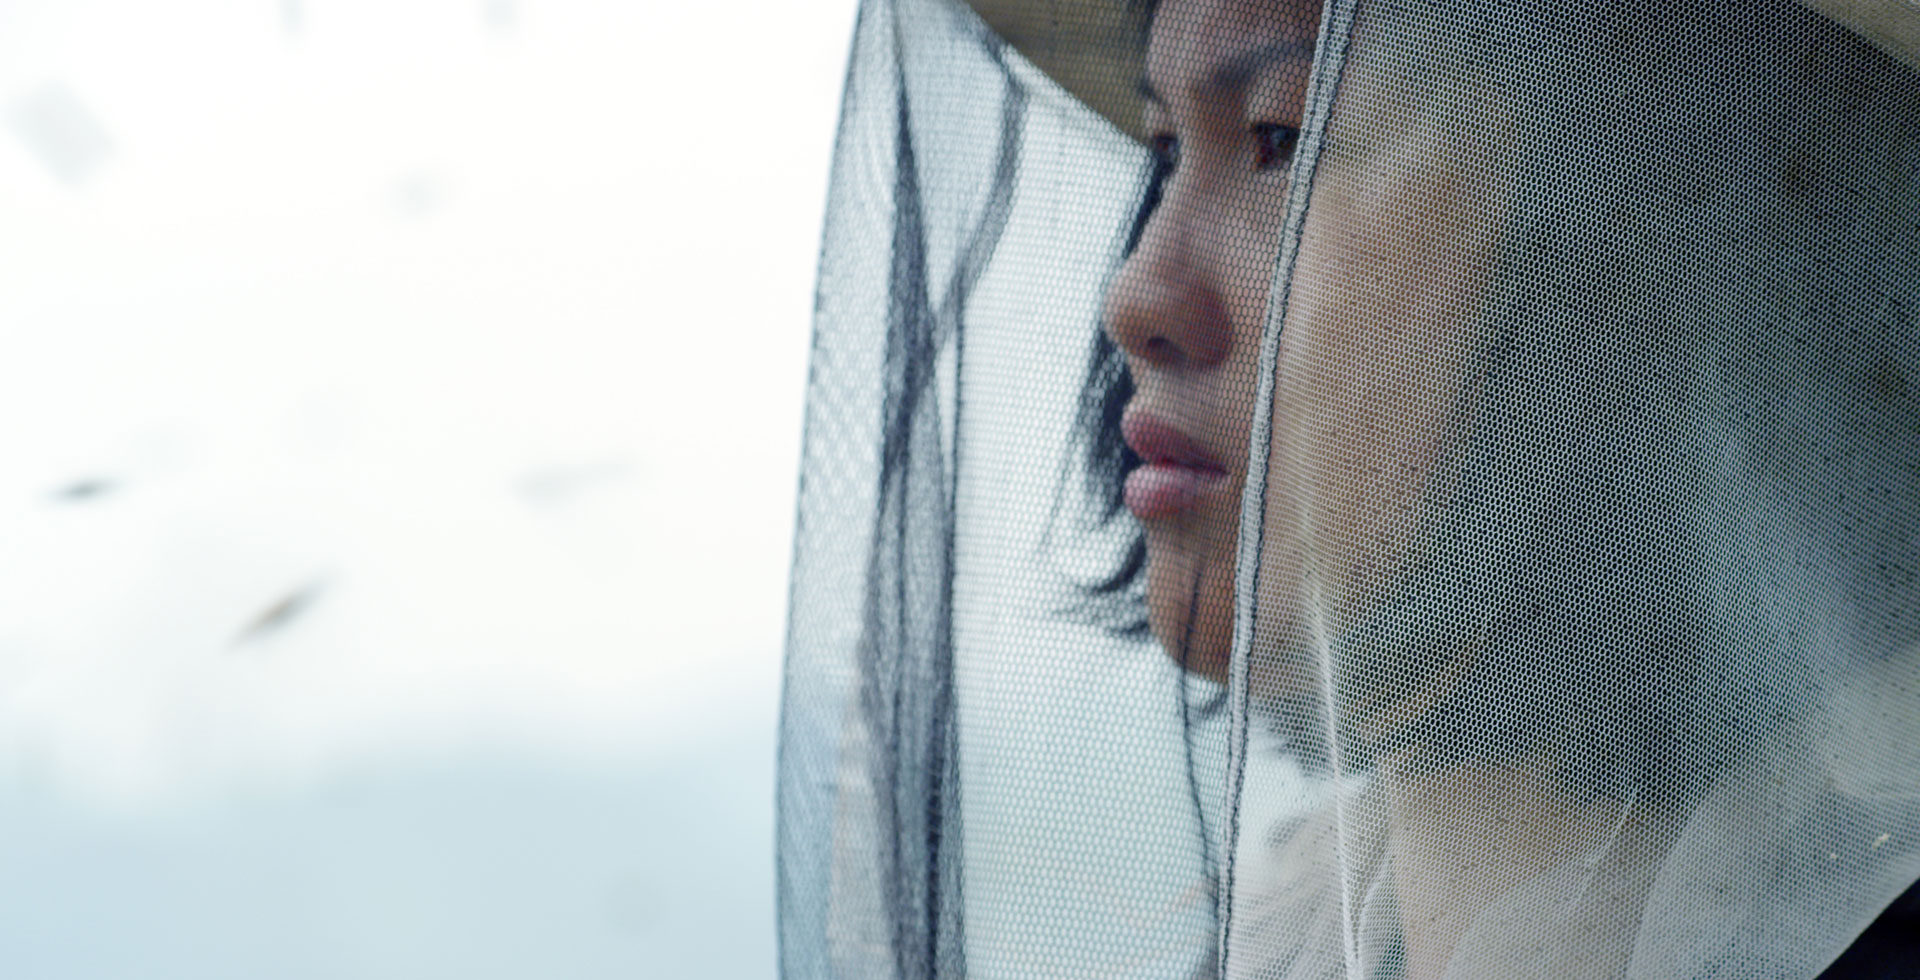 yuyu short film still by marc johnson featuring Yang dong Ju